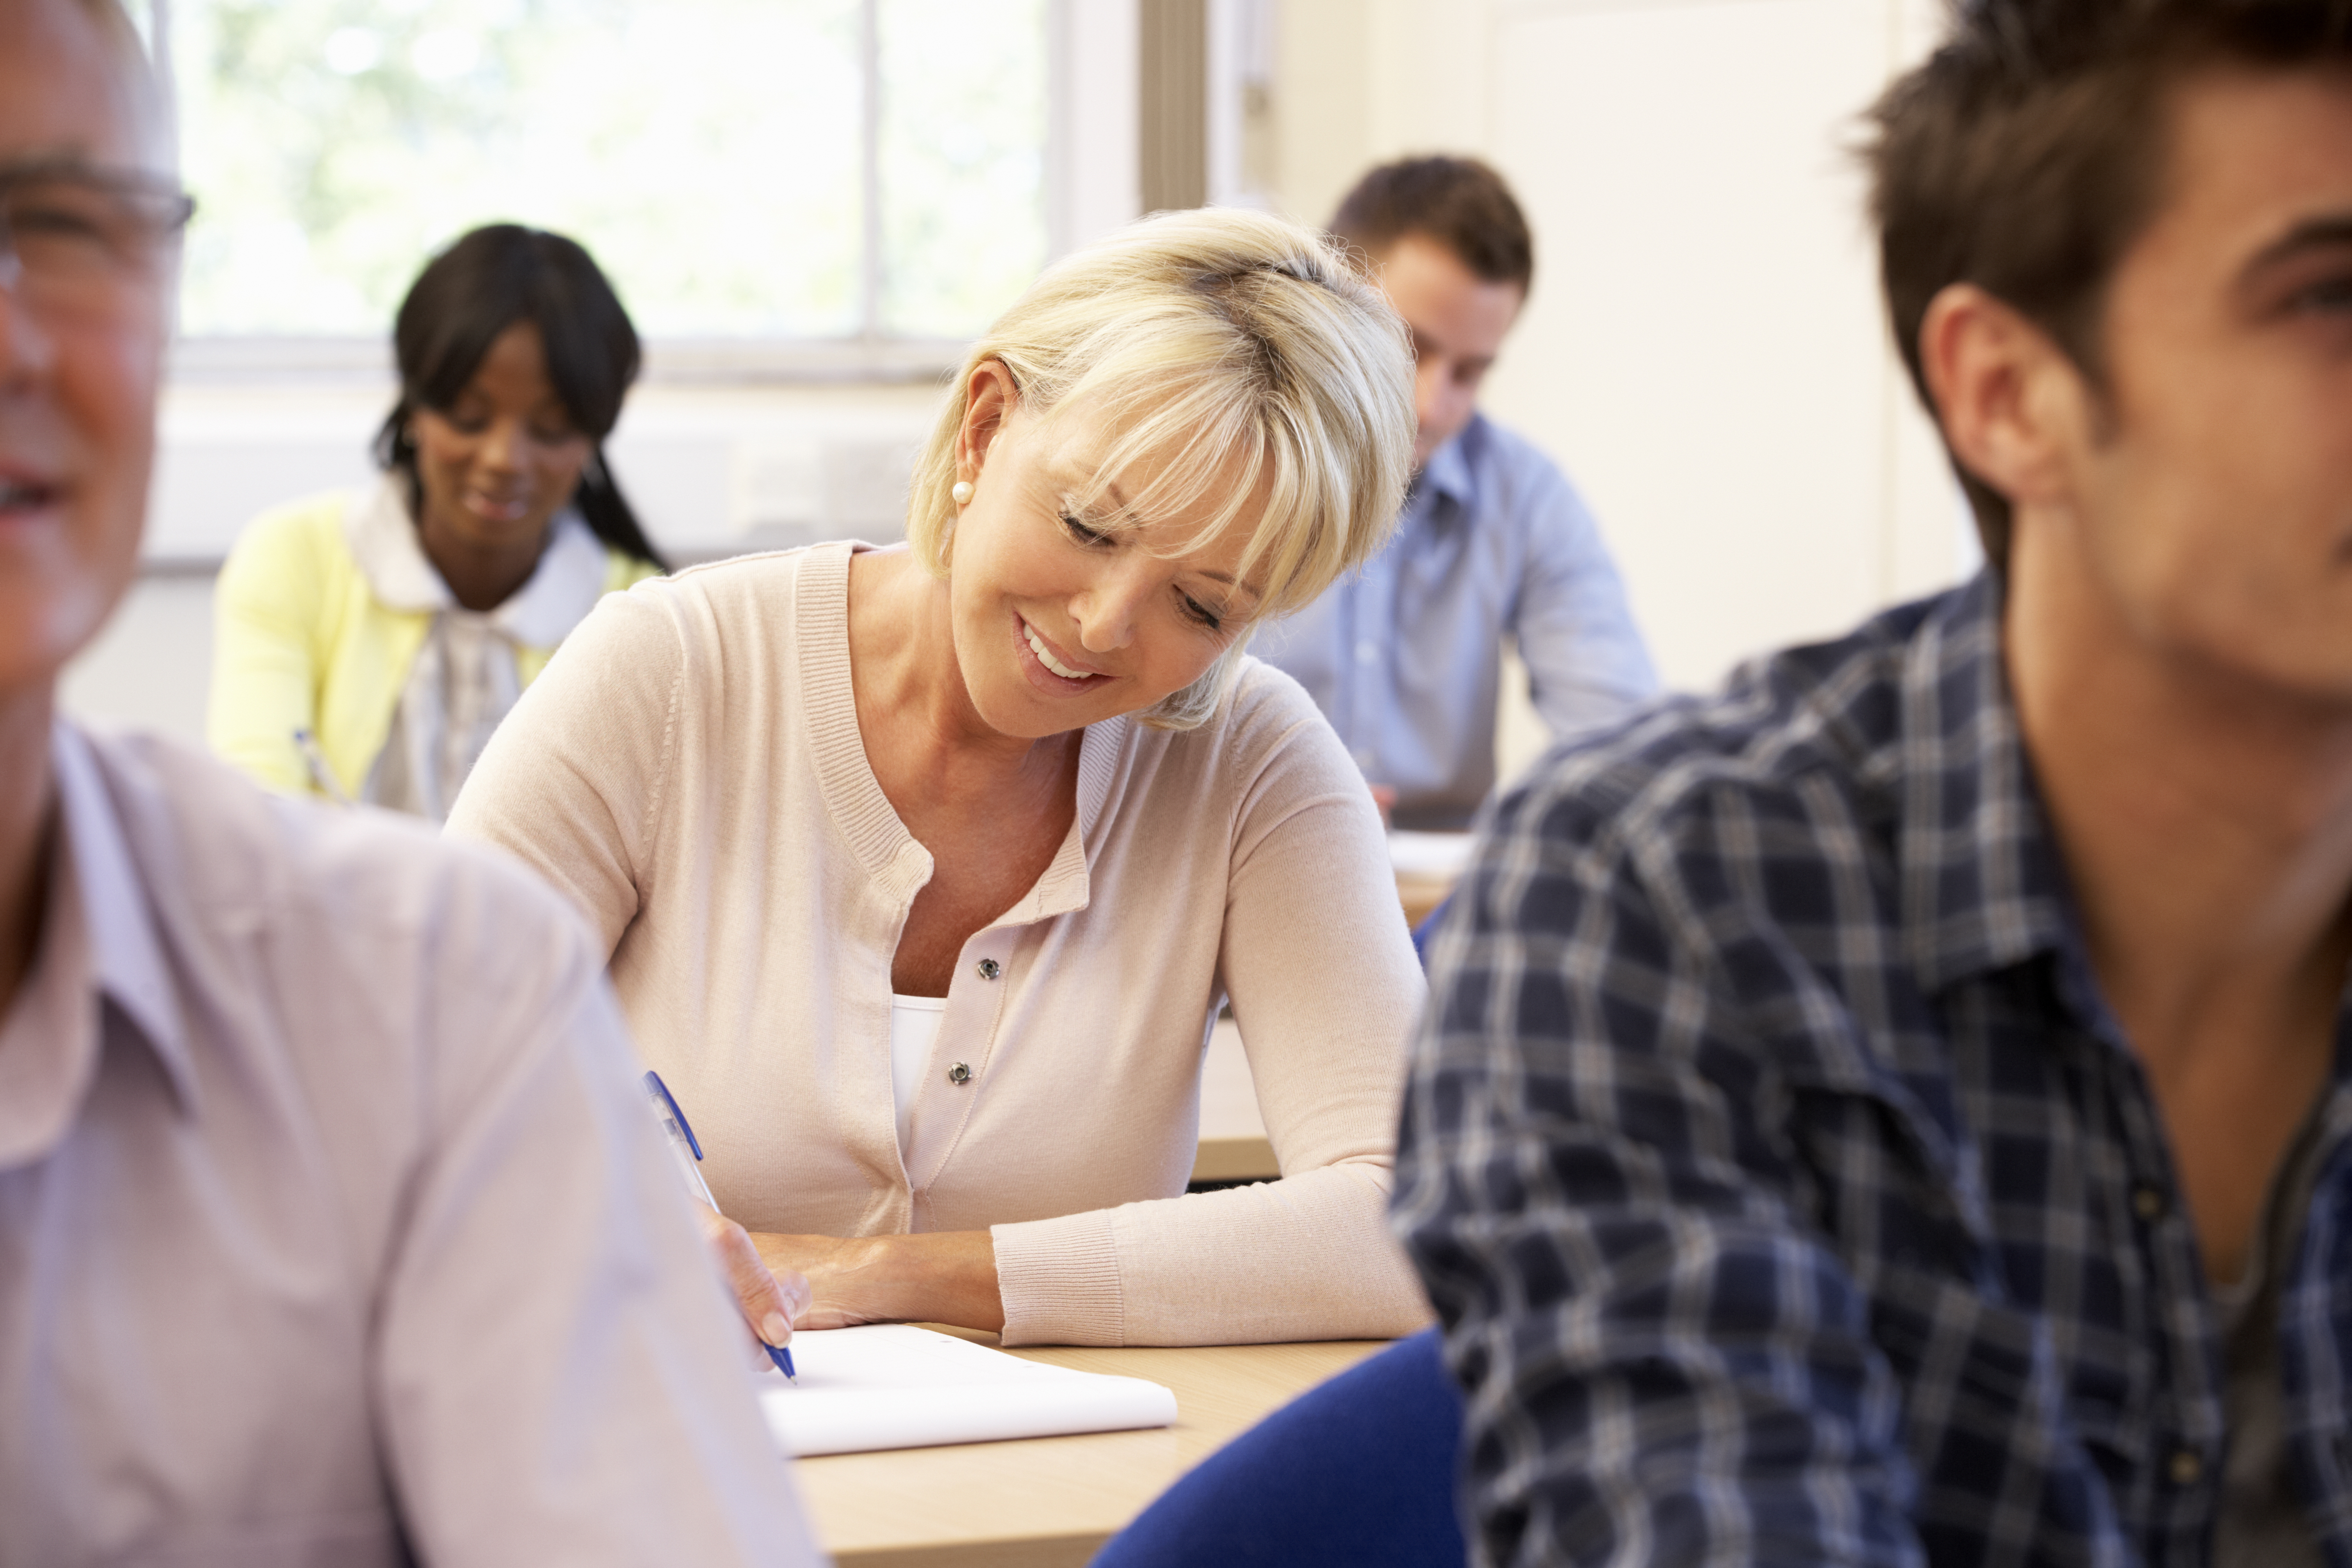 Middle-aged woman attending college class